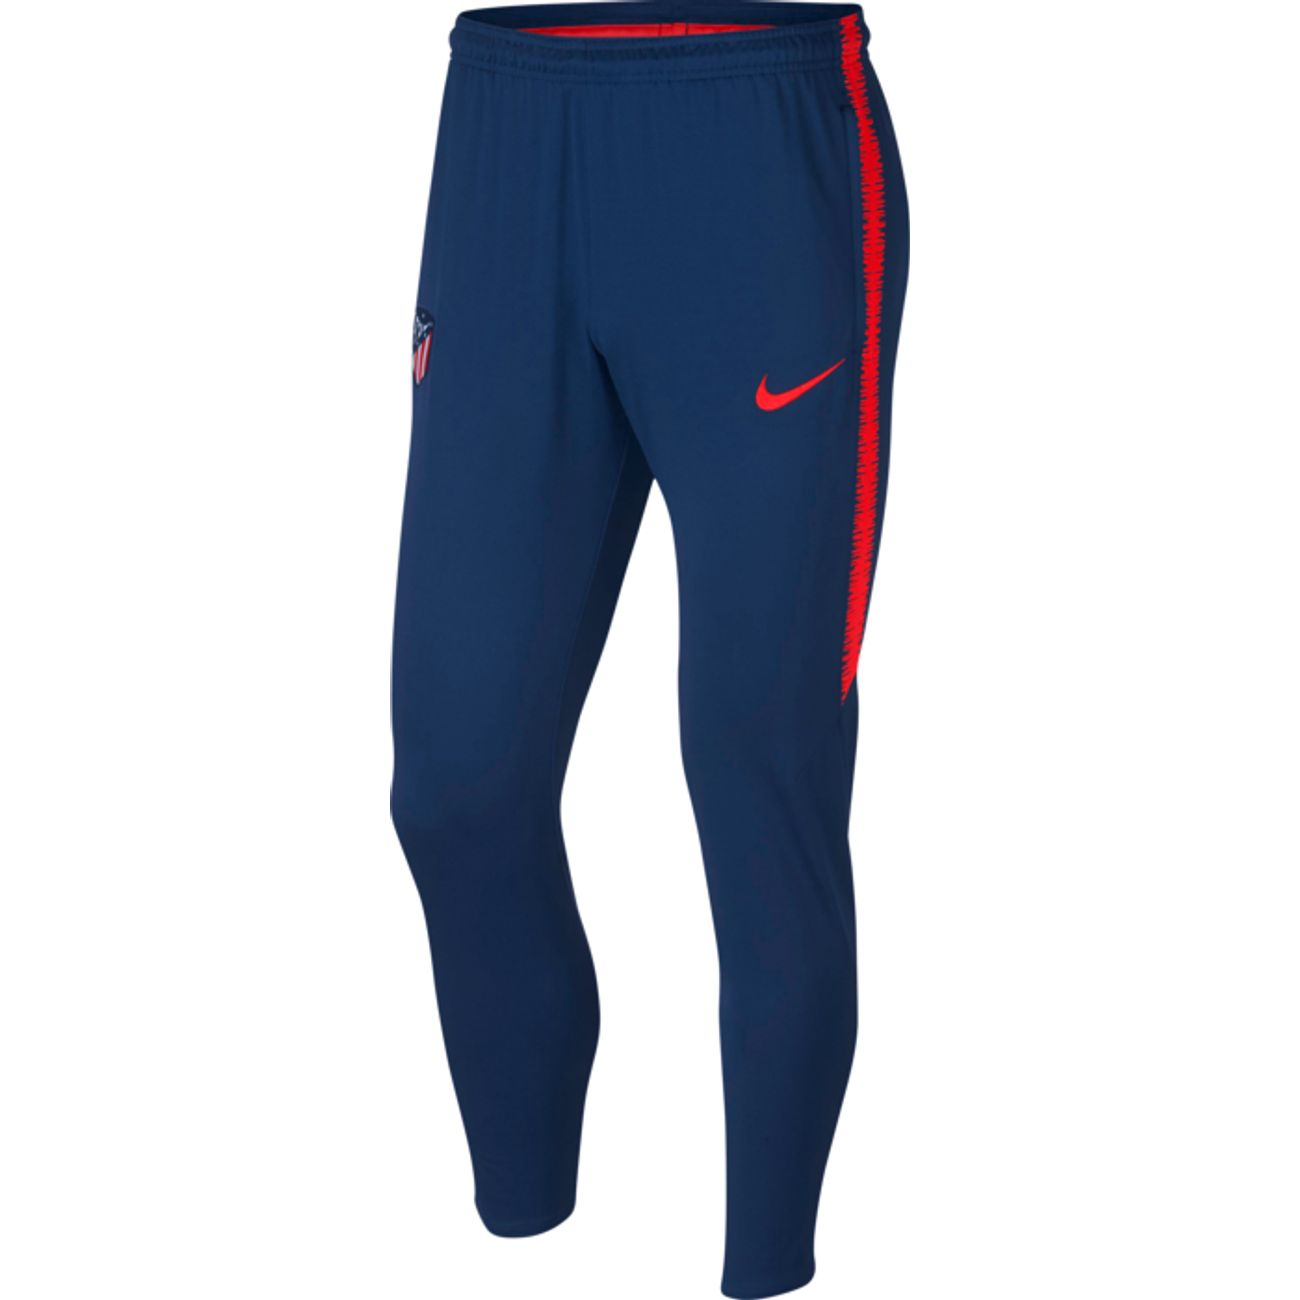 Tech Atletico Madrid Madrid Atletico Pant Tech Pant Atletico Madrid Pant Tech Madrid Atletico Tech qn77RTUB